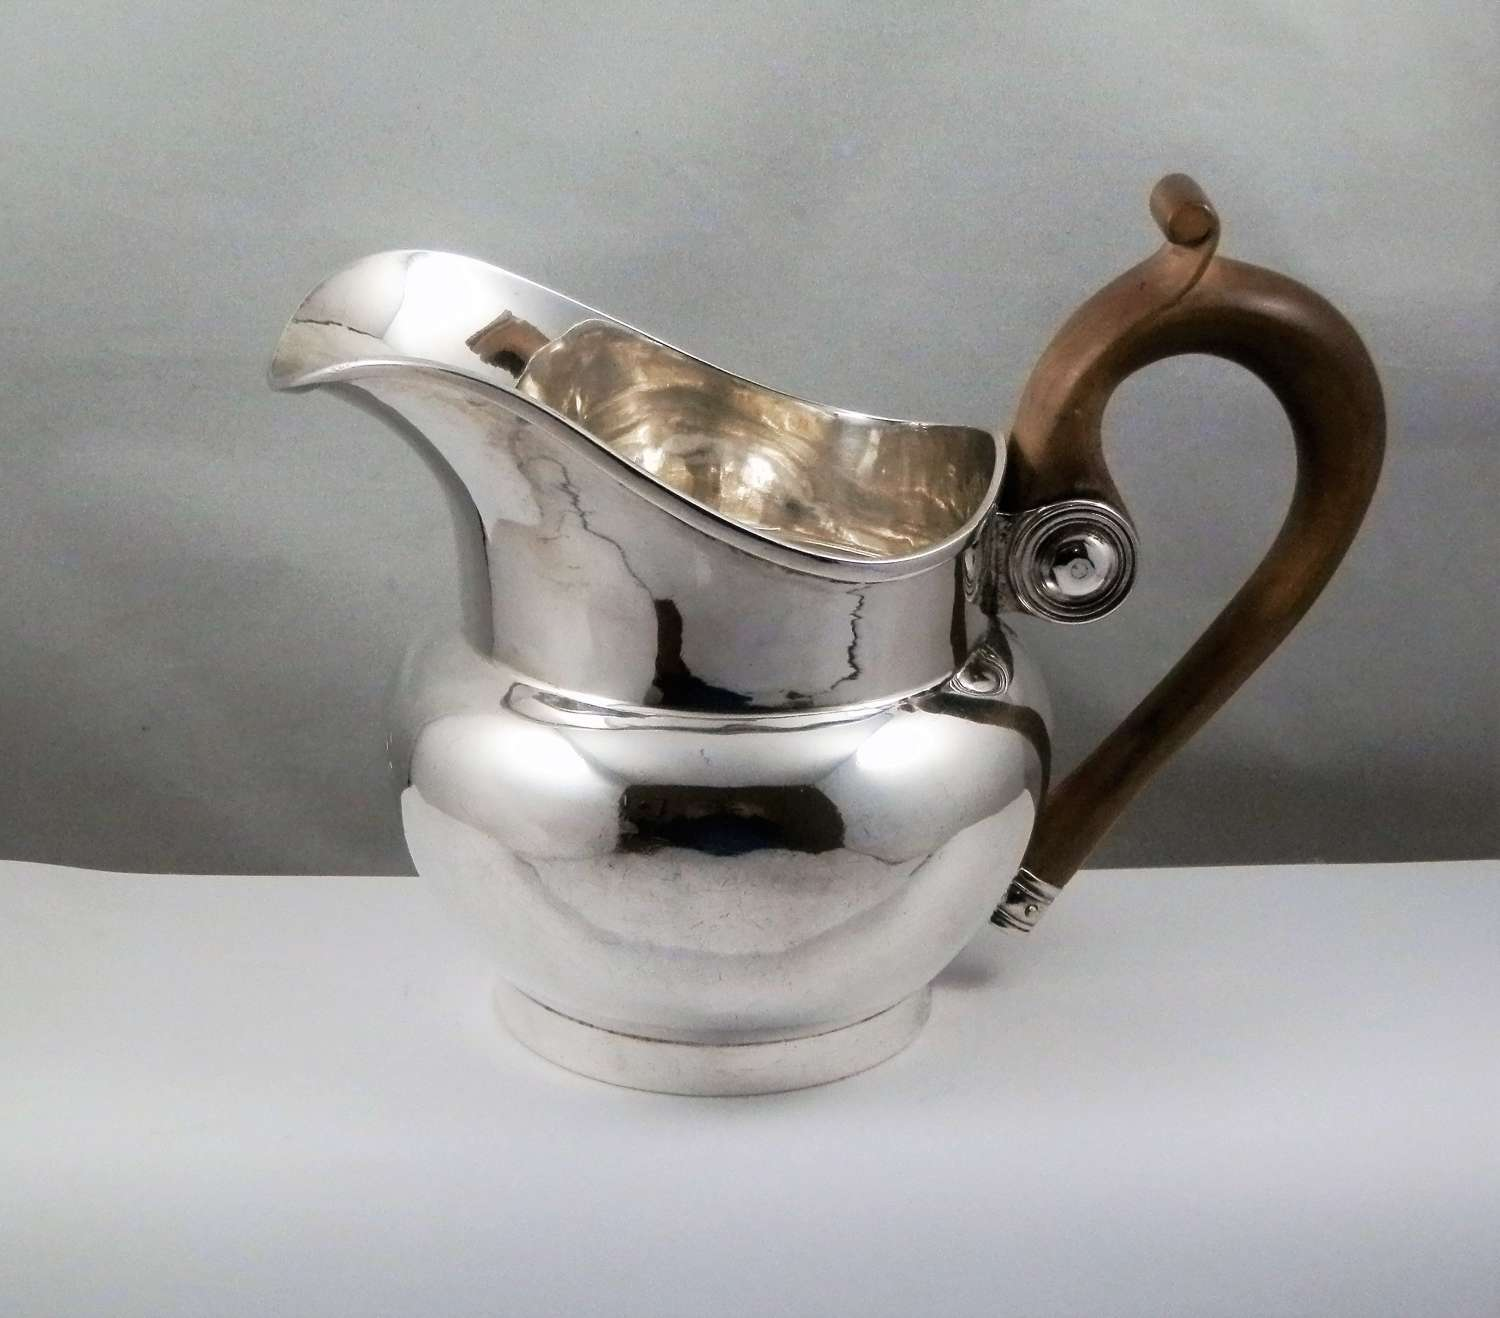 Victorian Scottish silver jug, Hamilton & Inches, Edinburgh 1874